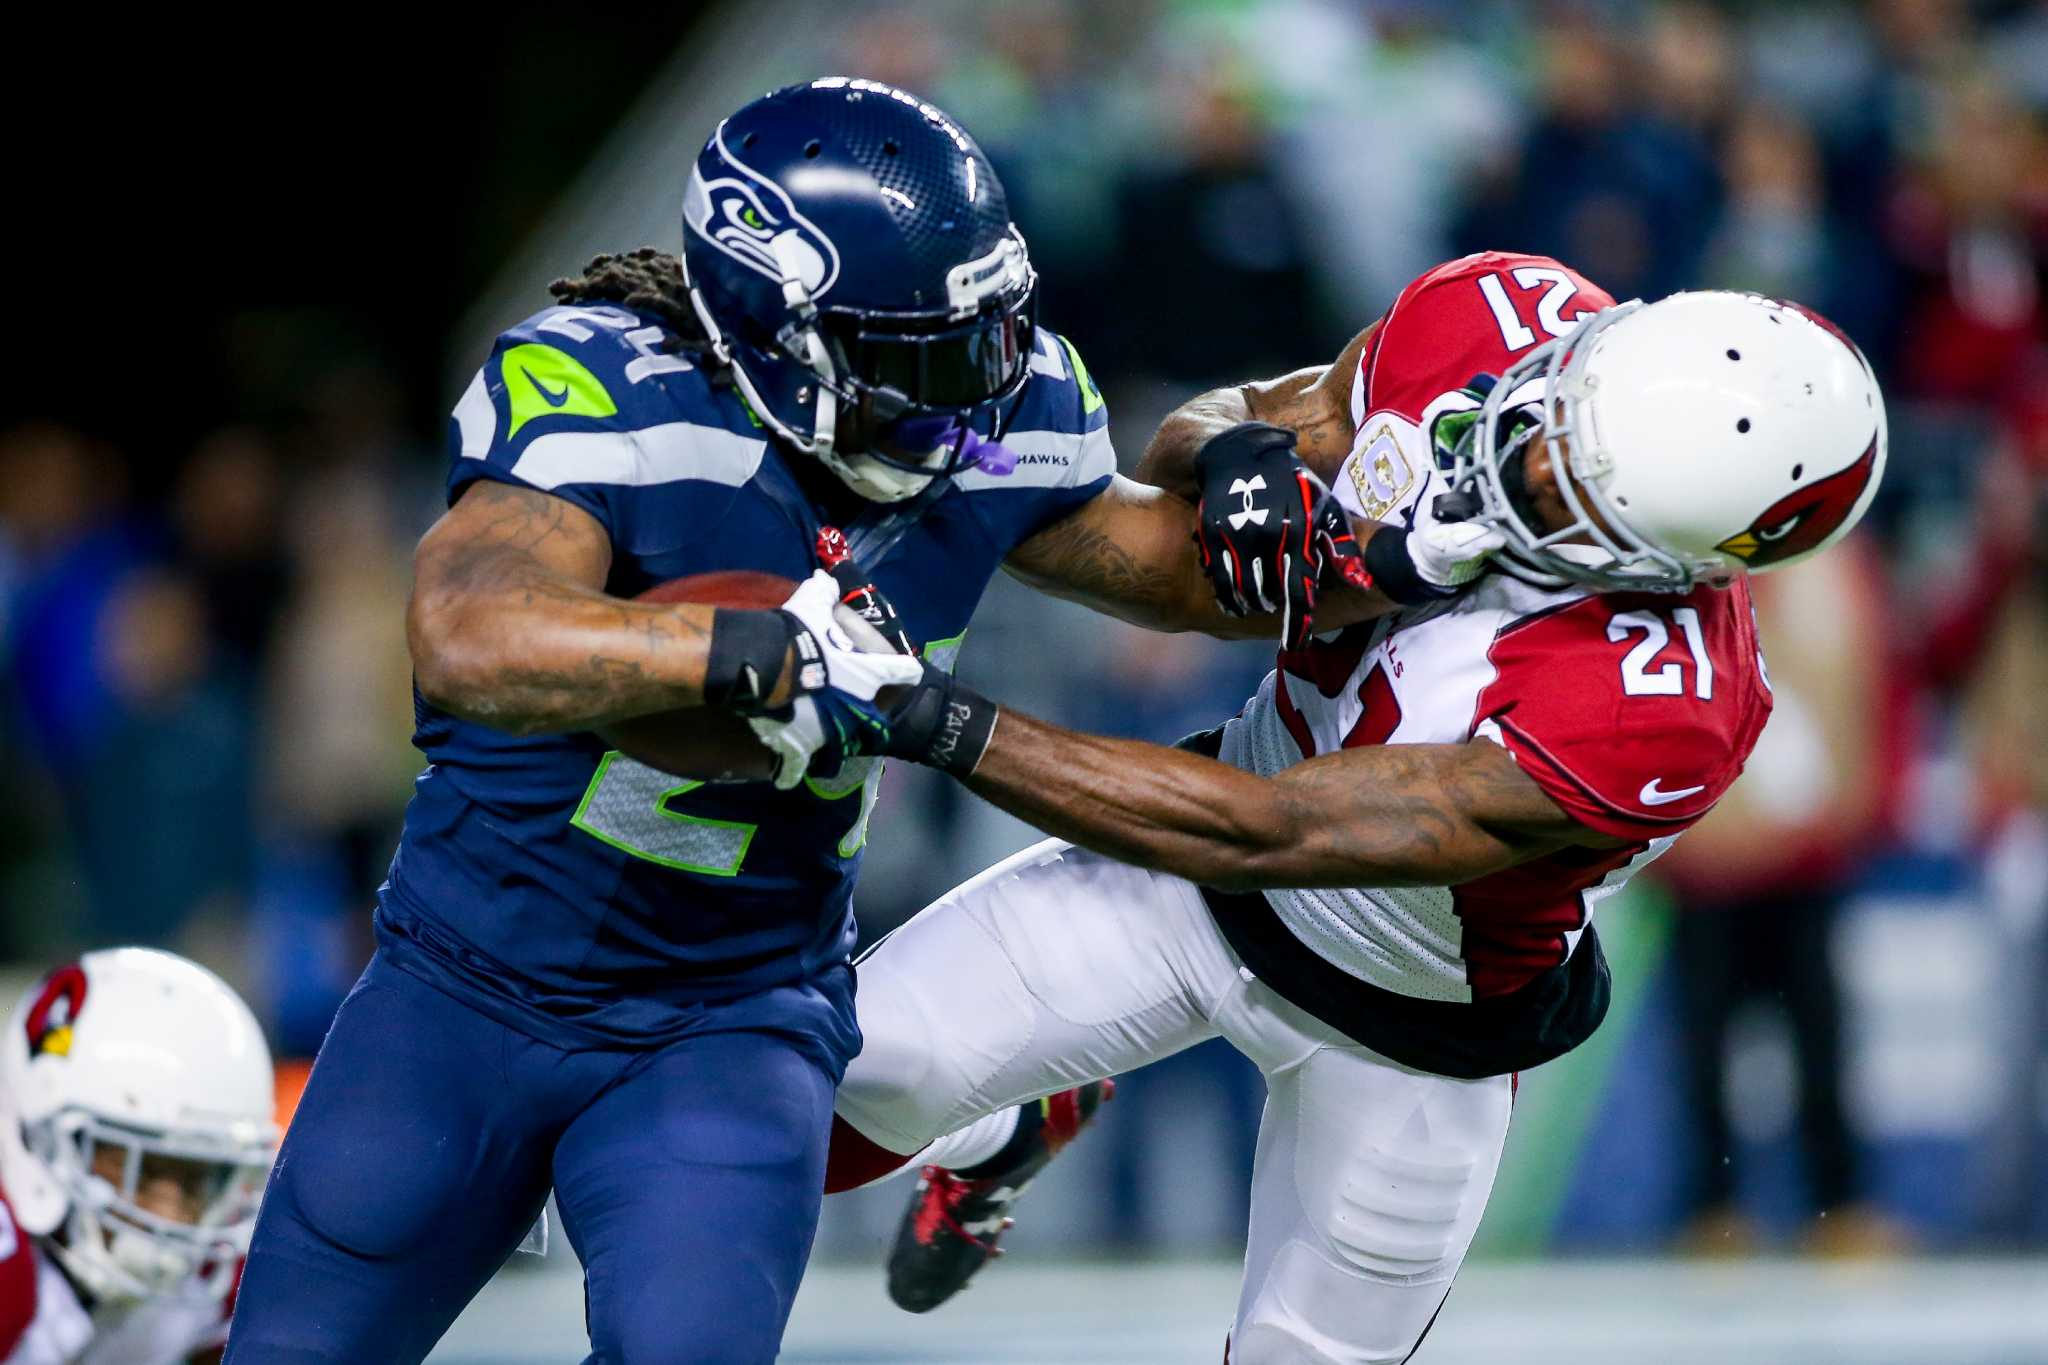 Seahawks Place Marshawn Lynch On Reserve Retired List